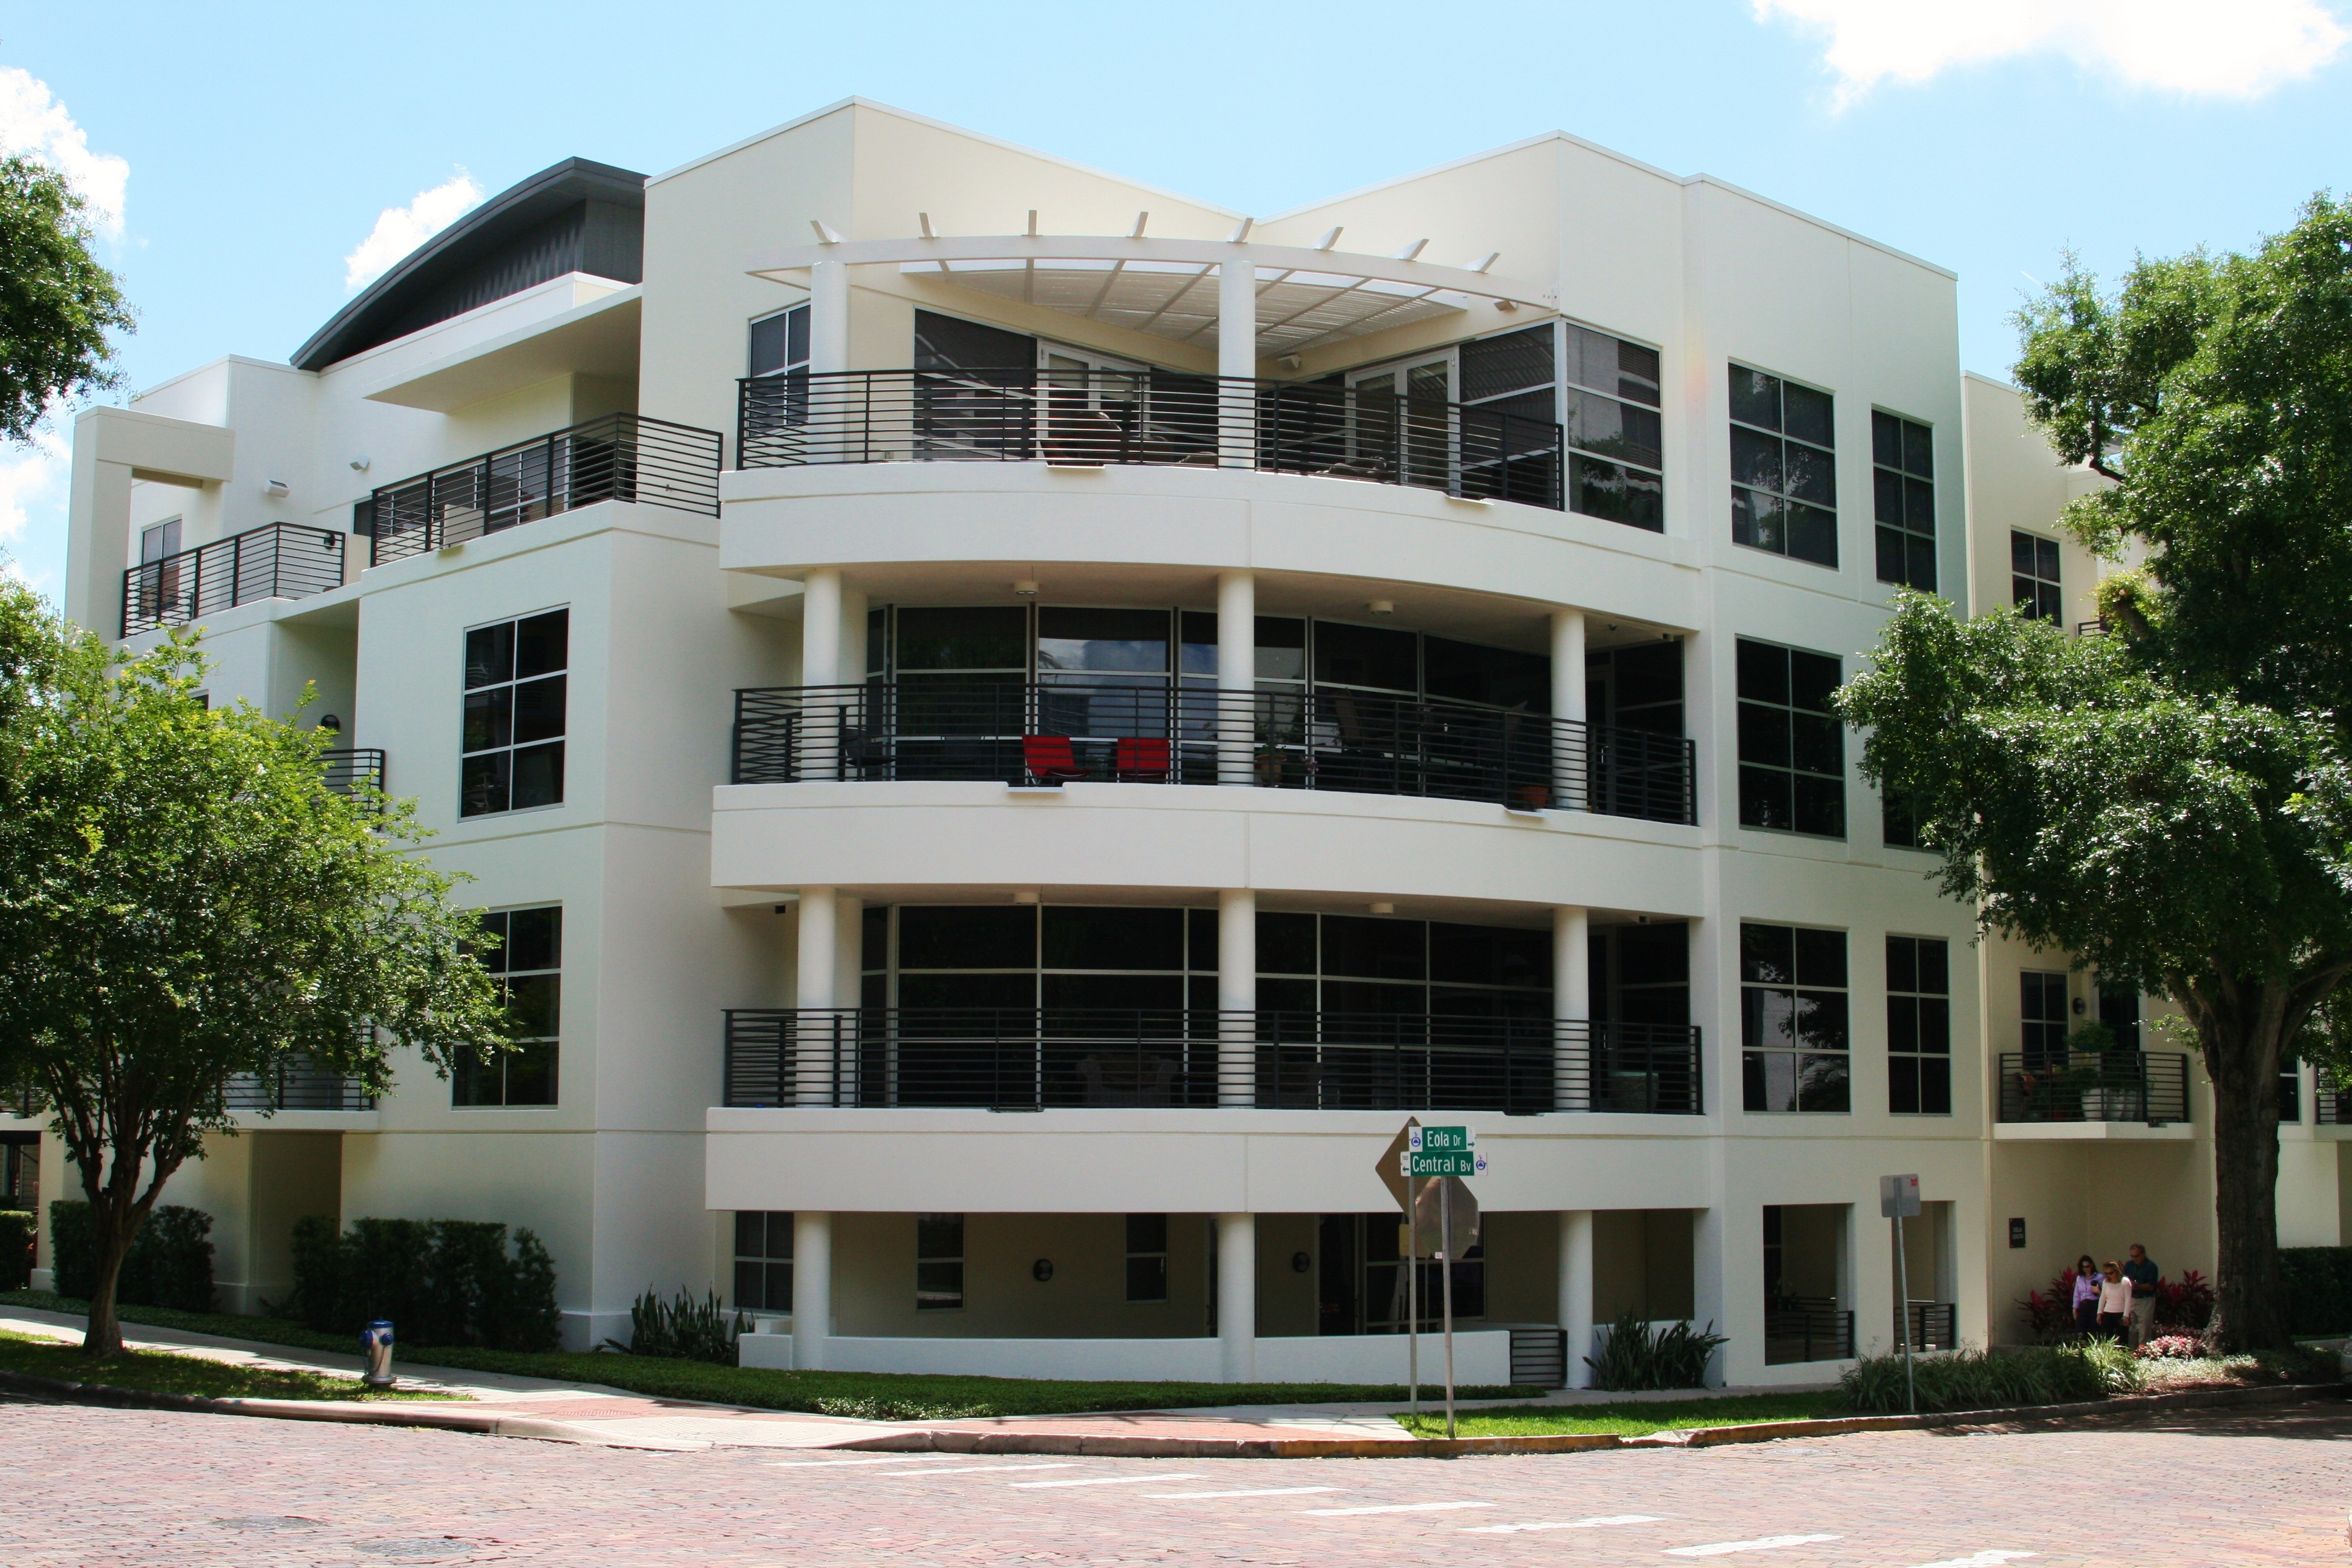 Downtown Orlando condo prices double in 3 years